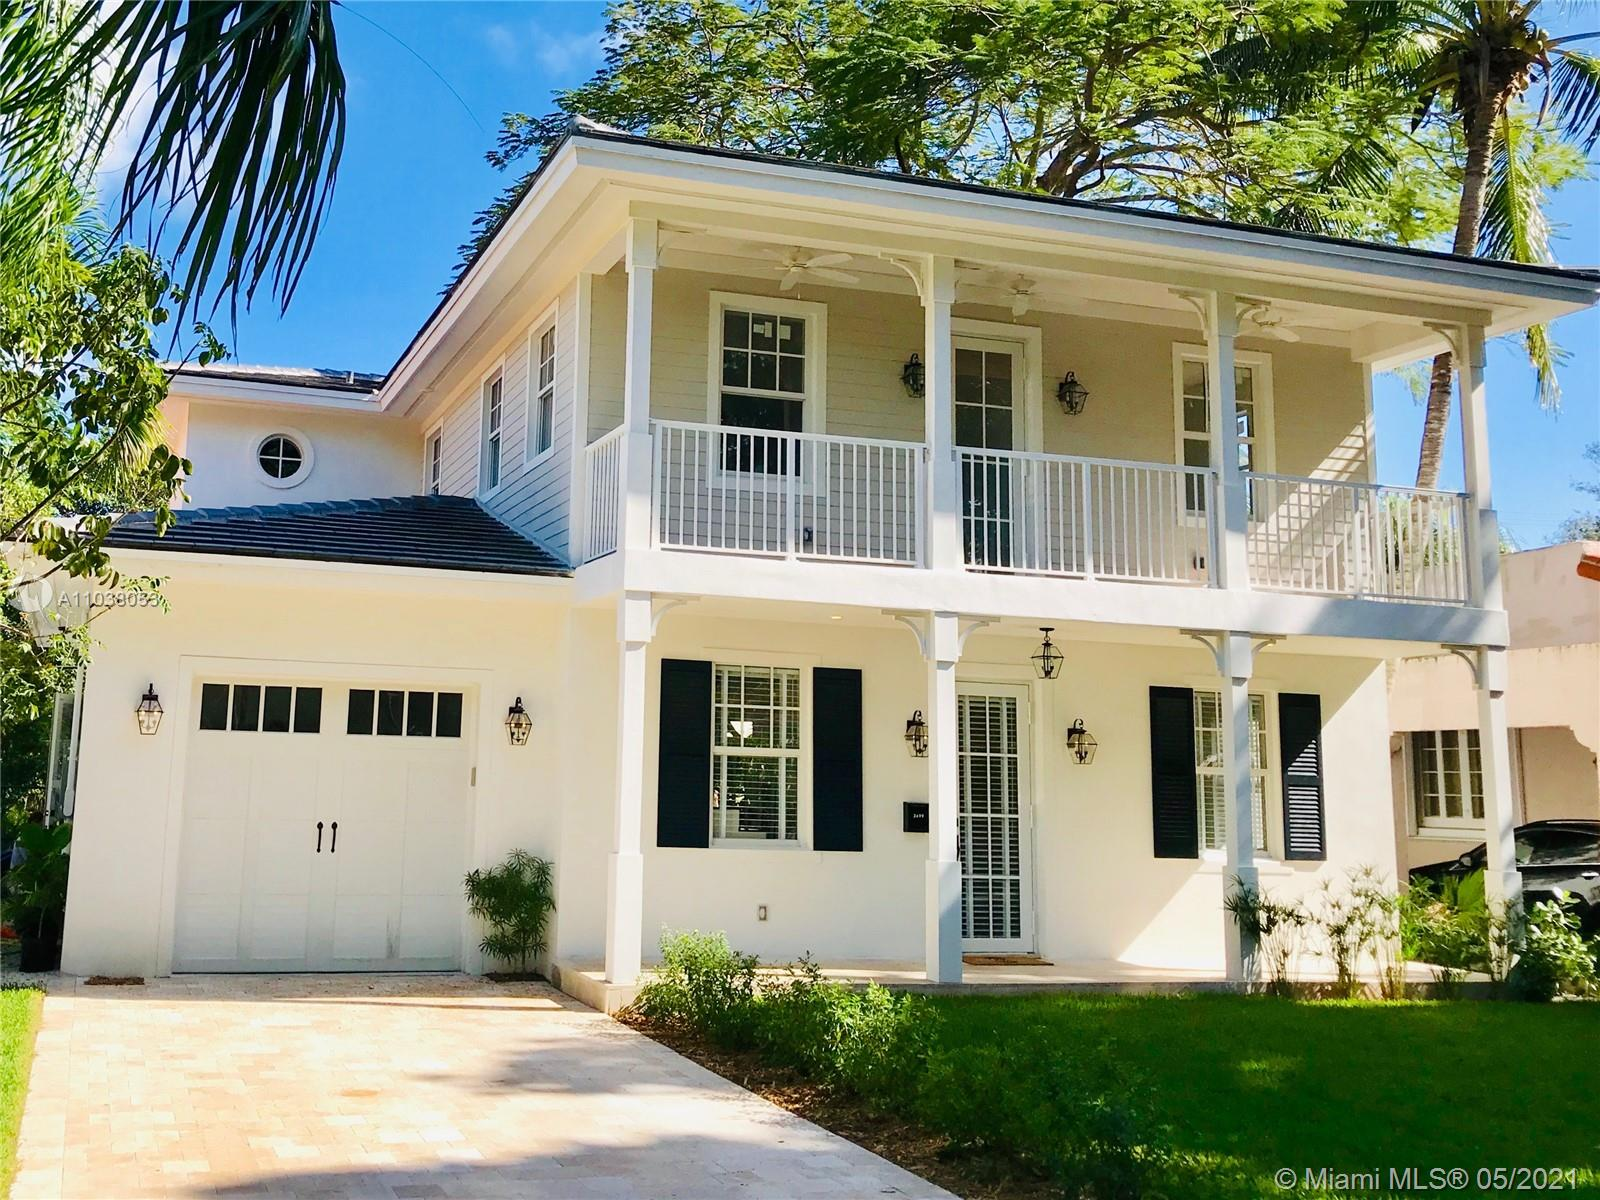 A rare find in the Golden Triangle! This elegant Key West style home is a completely new construction of 2020. Large open spaces, high ceilings and soft natural colors create a relaxing atmosphere. A lush tropical garden surrounds the sparkling pool, making it a perfect retreat in this most coveted neighborhood, with picturesque tree-lined streets, close to the downtowns of Coral Gables and Miami. The Biltmore golf, Venetian Pool, Miracle Mile shops & restaurants are a short stroll or bike ride away. 4 beds/4 baths, trendy kitchen, beautiful wooden stairs leading to a spacious landing, master bedroom w/ walk-in closet, double sinks, freestanding tub, shower and separate toilet. One-car garage, laundry area. Quality finishes w/ top of the line appliances and home systems.